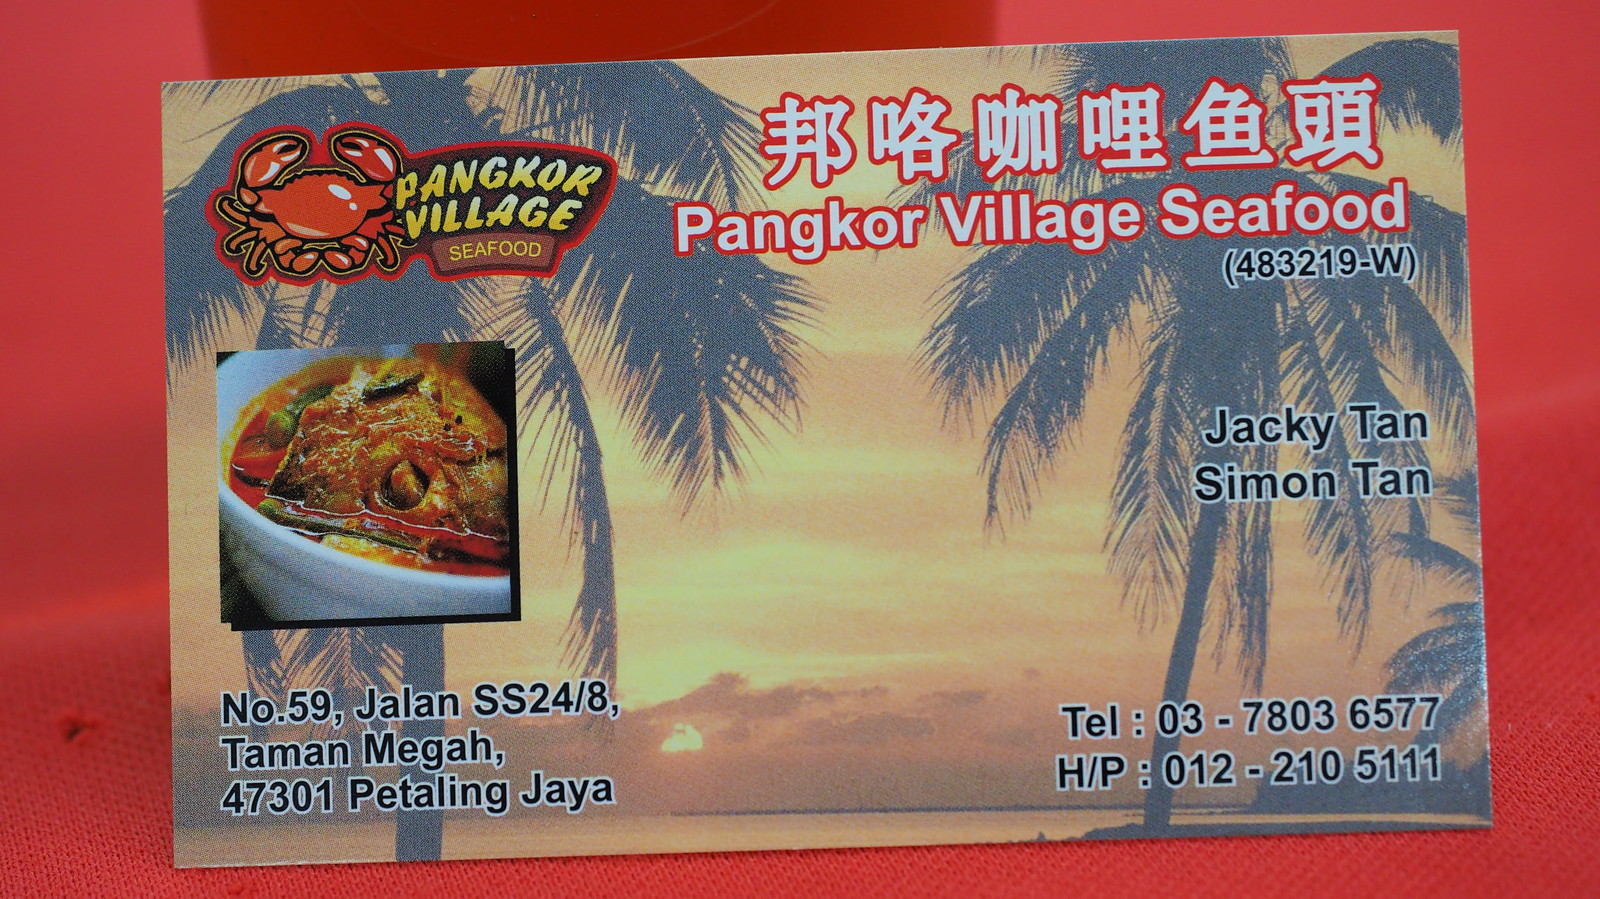 Front of Name card for Pangkor Village Seafood, Taman Megah